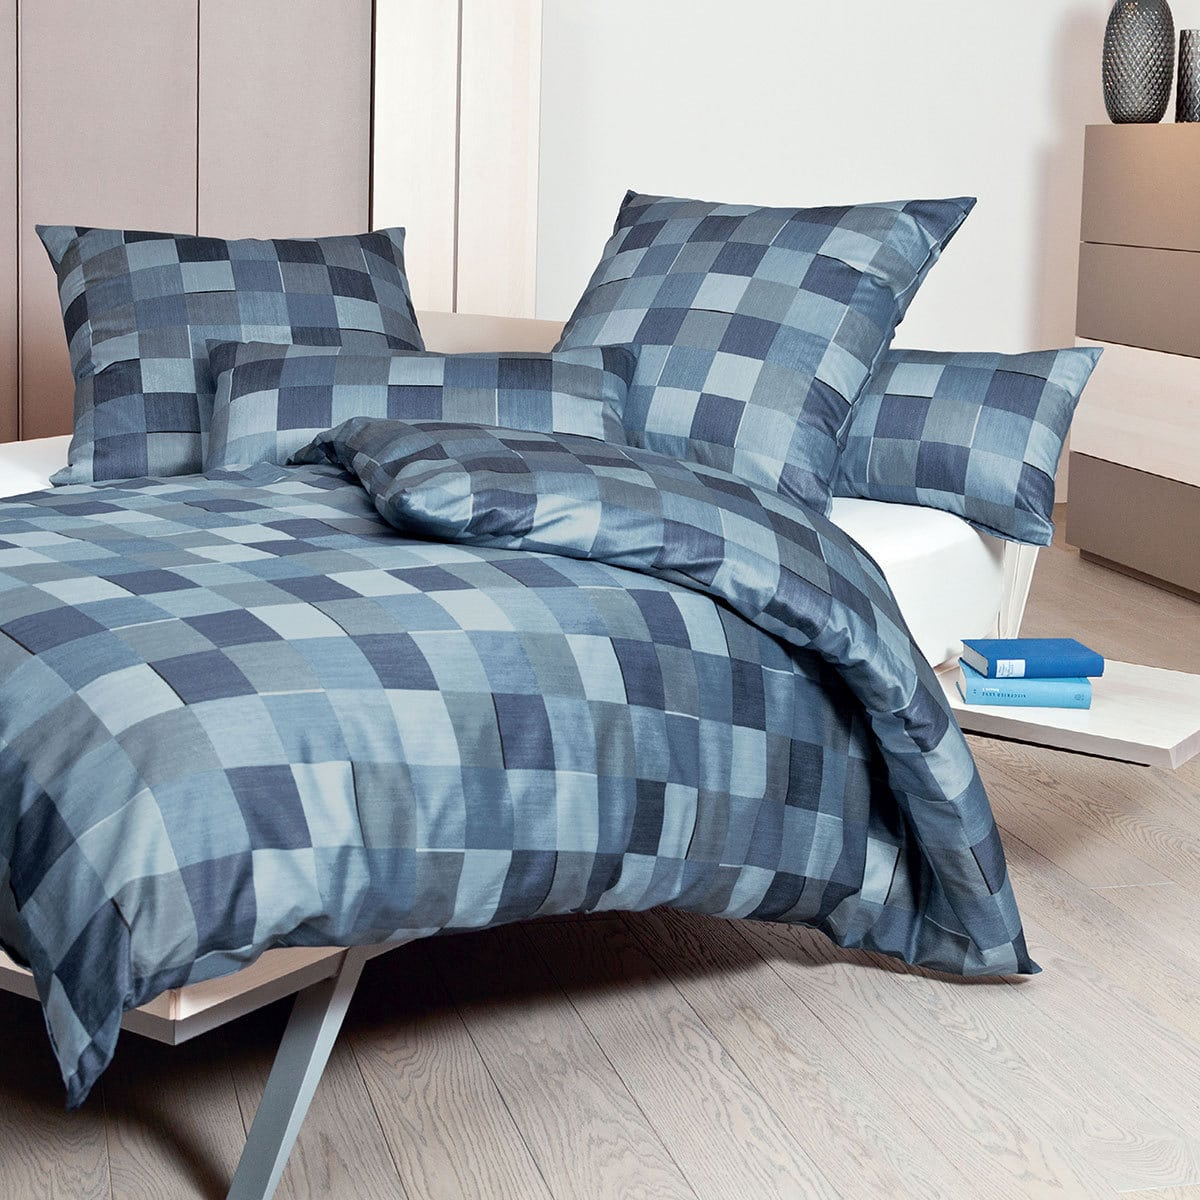 janine interlock feinjersey bettw sche carmen 53030 02 blau g nstig online kaufen bei bettwaren shop. Black Bedroom Furniture Sets. Home Design Ideas